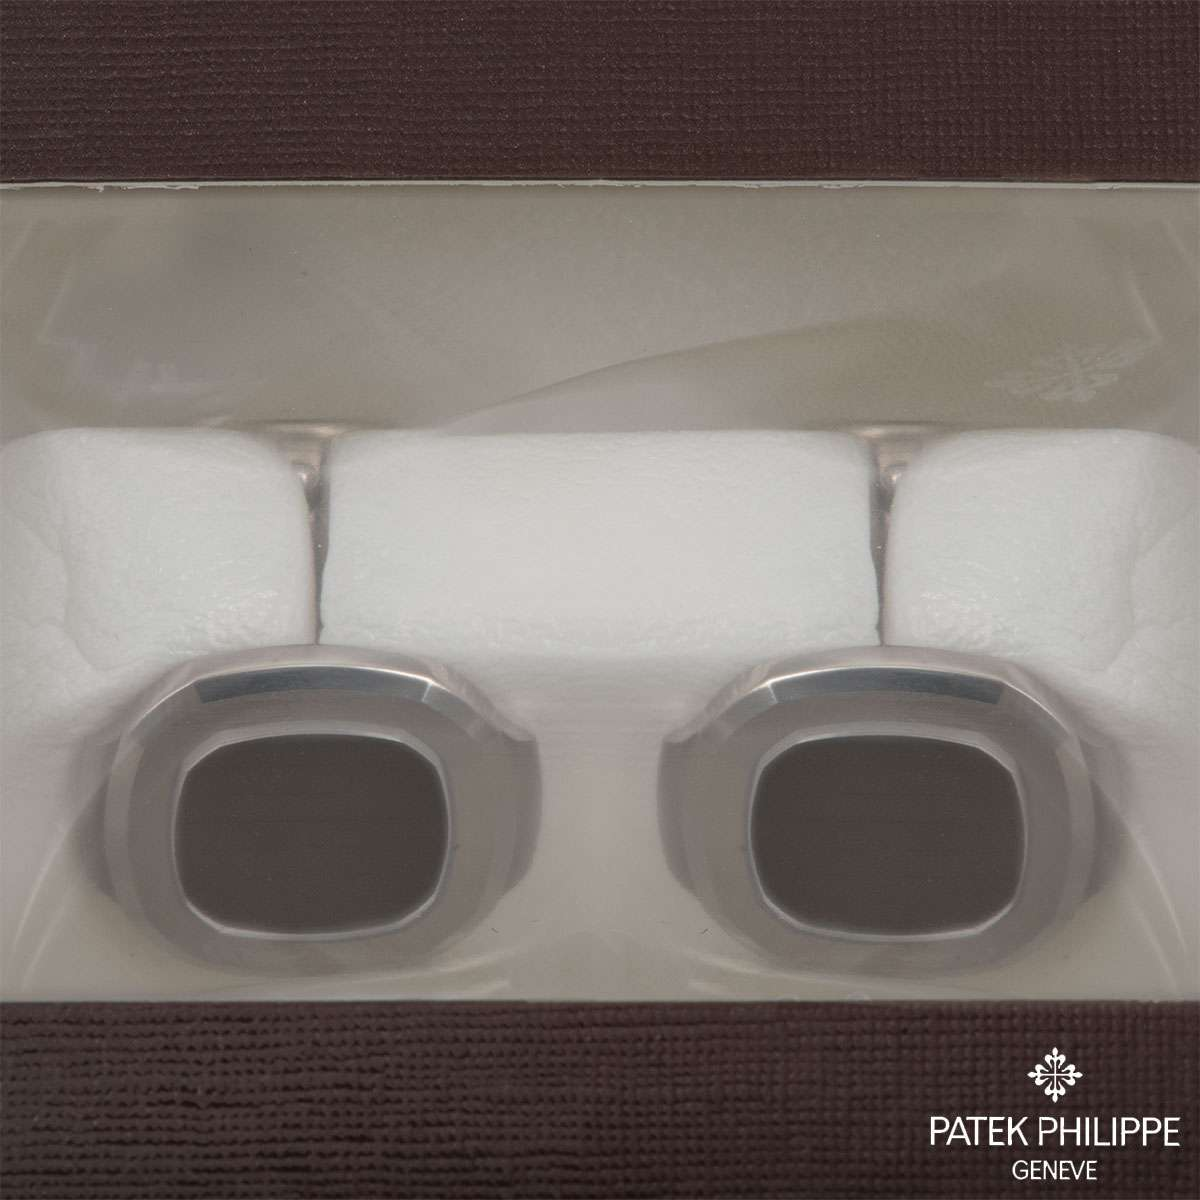 Patek Philippe White Gold Double Sealed Nautilus Cufflinks 205.9057G-001